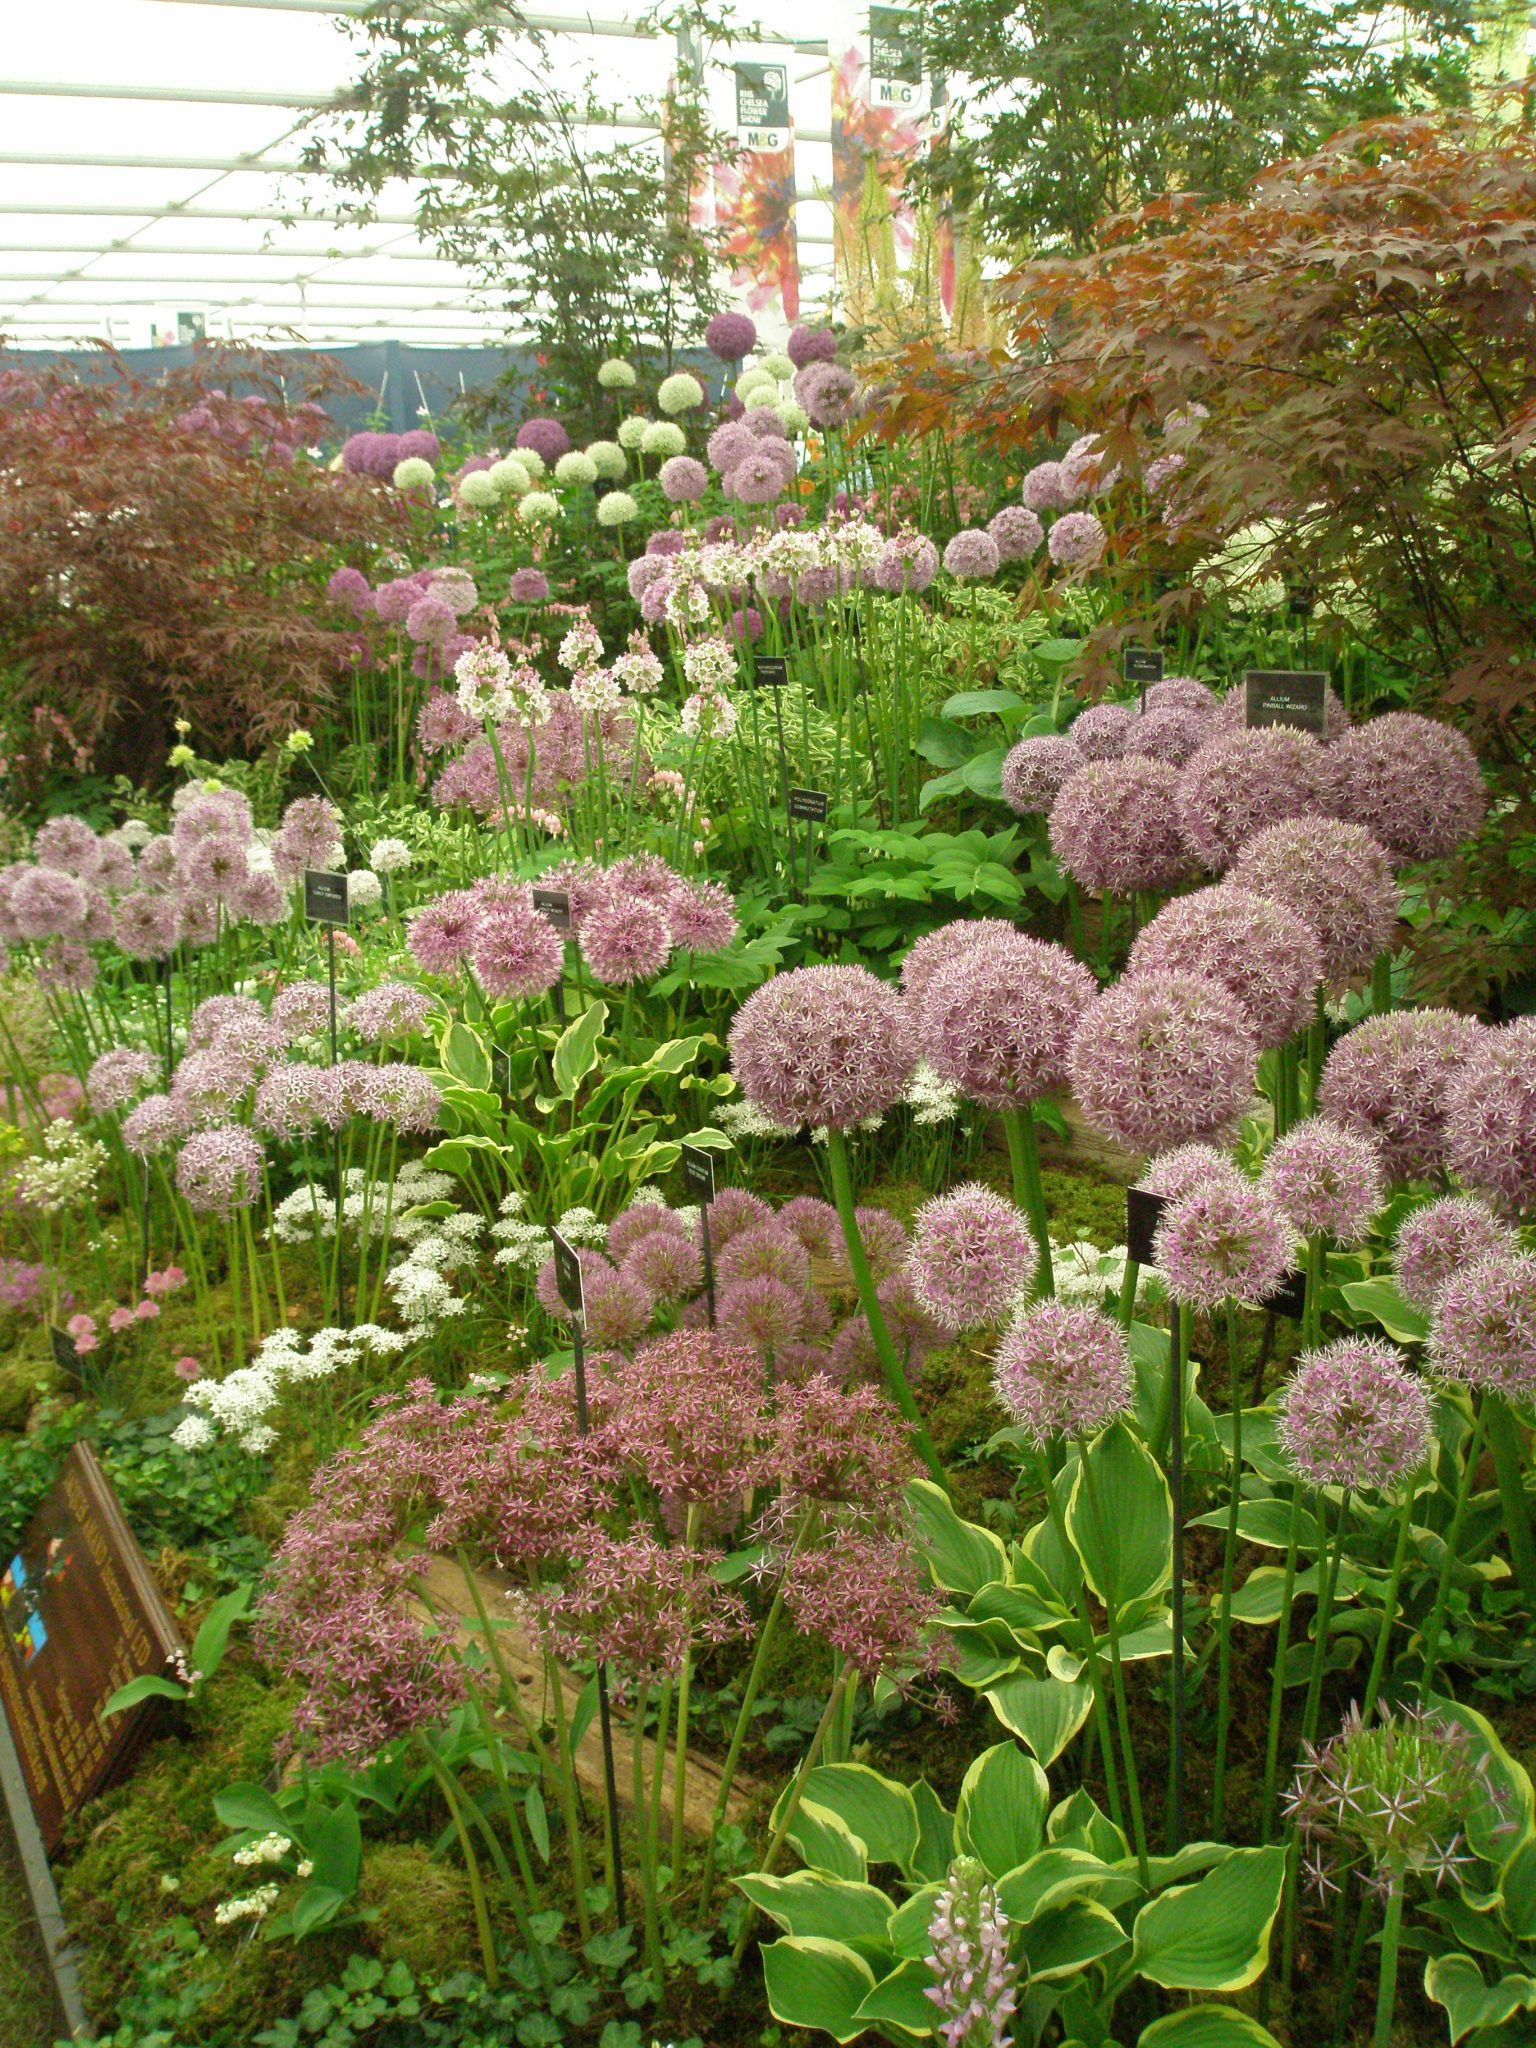 Allium-Heaven. This is what I'd like my Late-Springtime-Dream-Garden to look like...